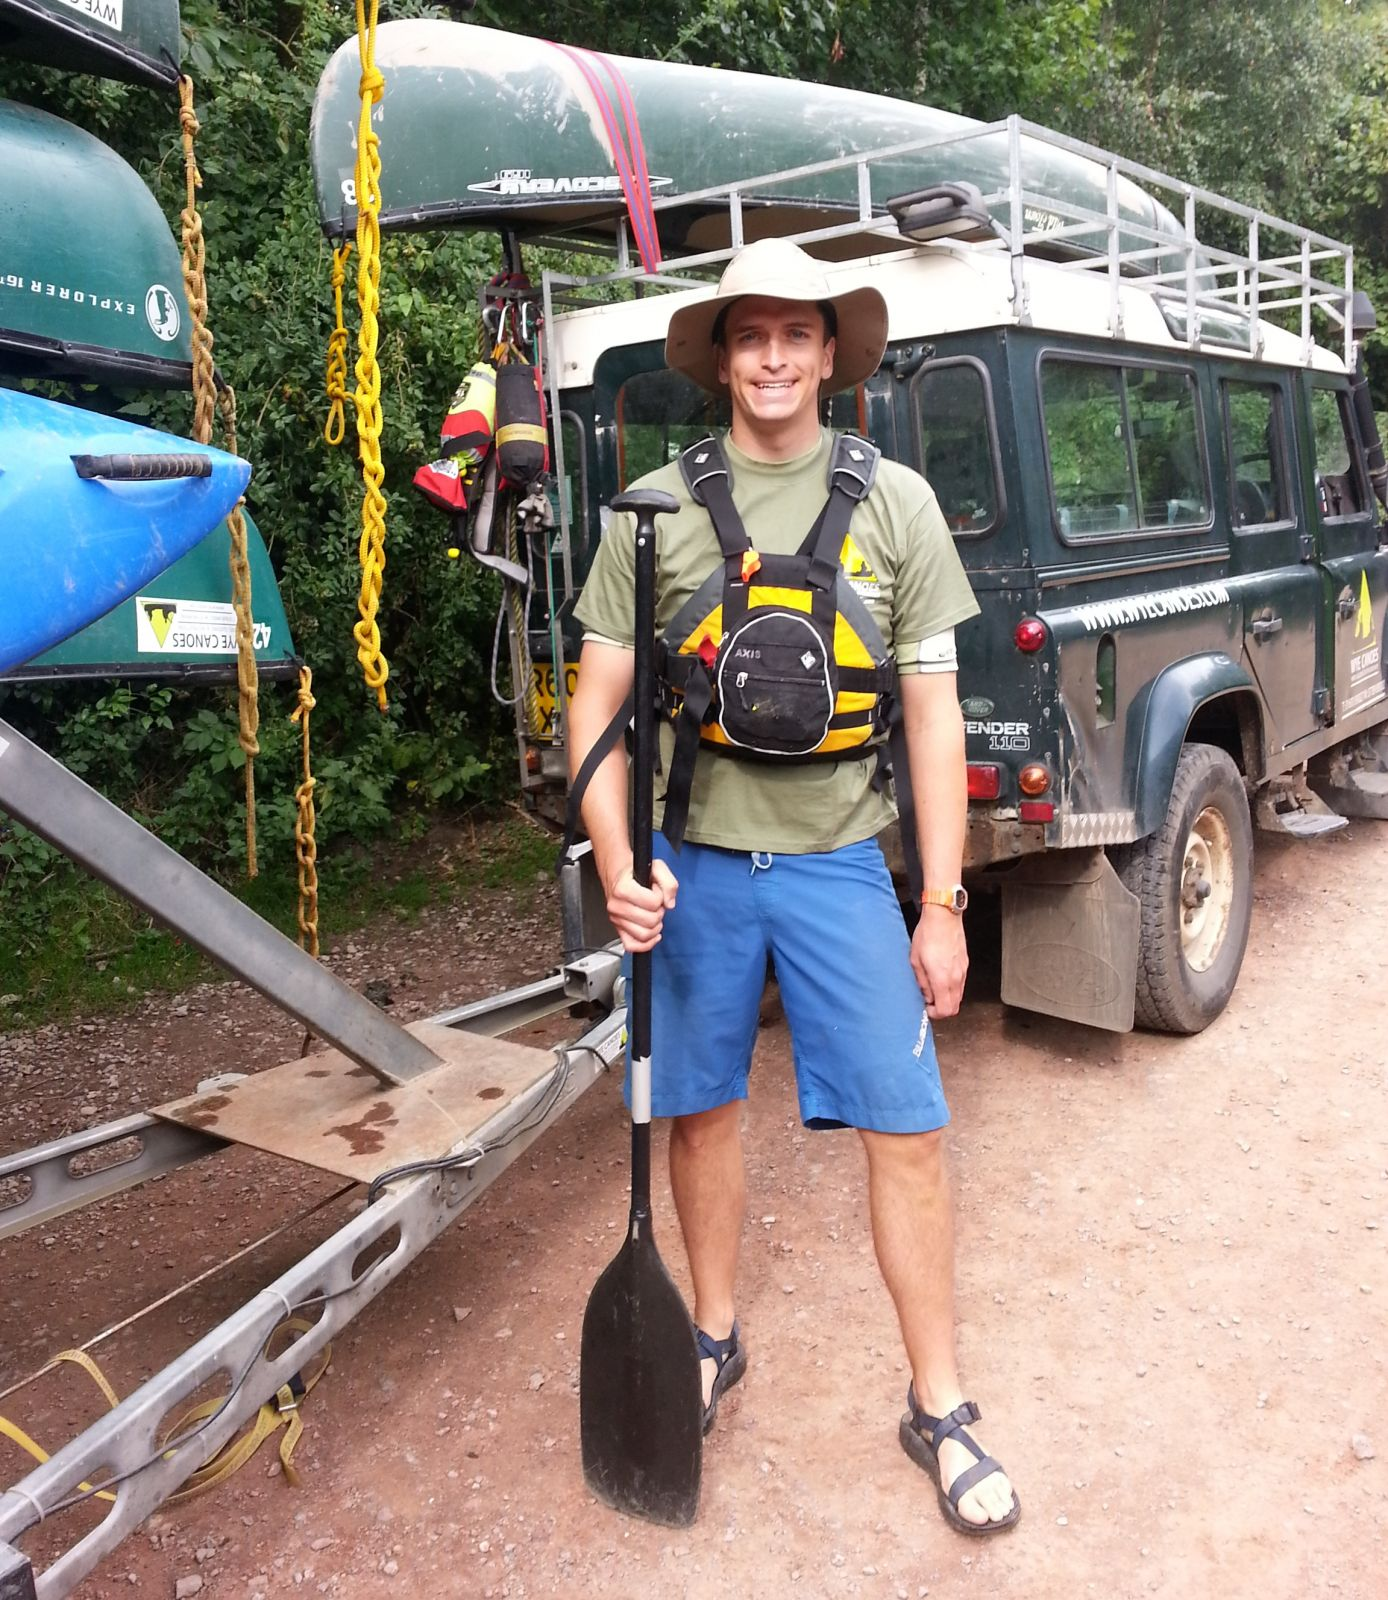 A Wye Canoes River Guide